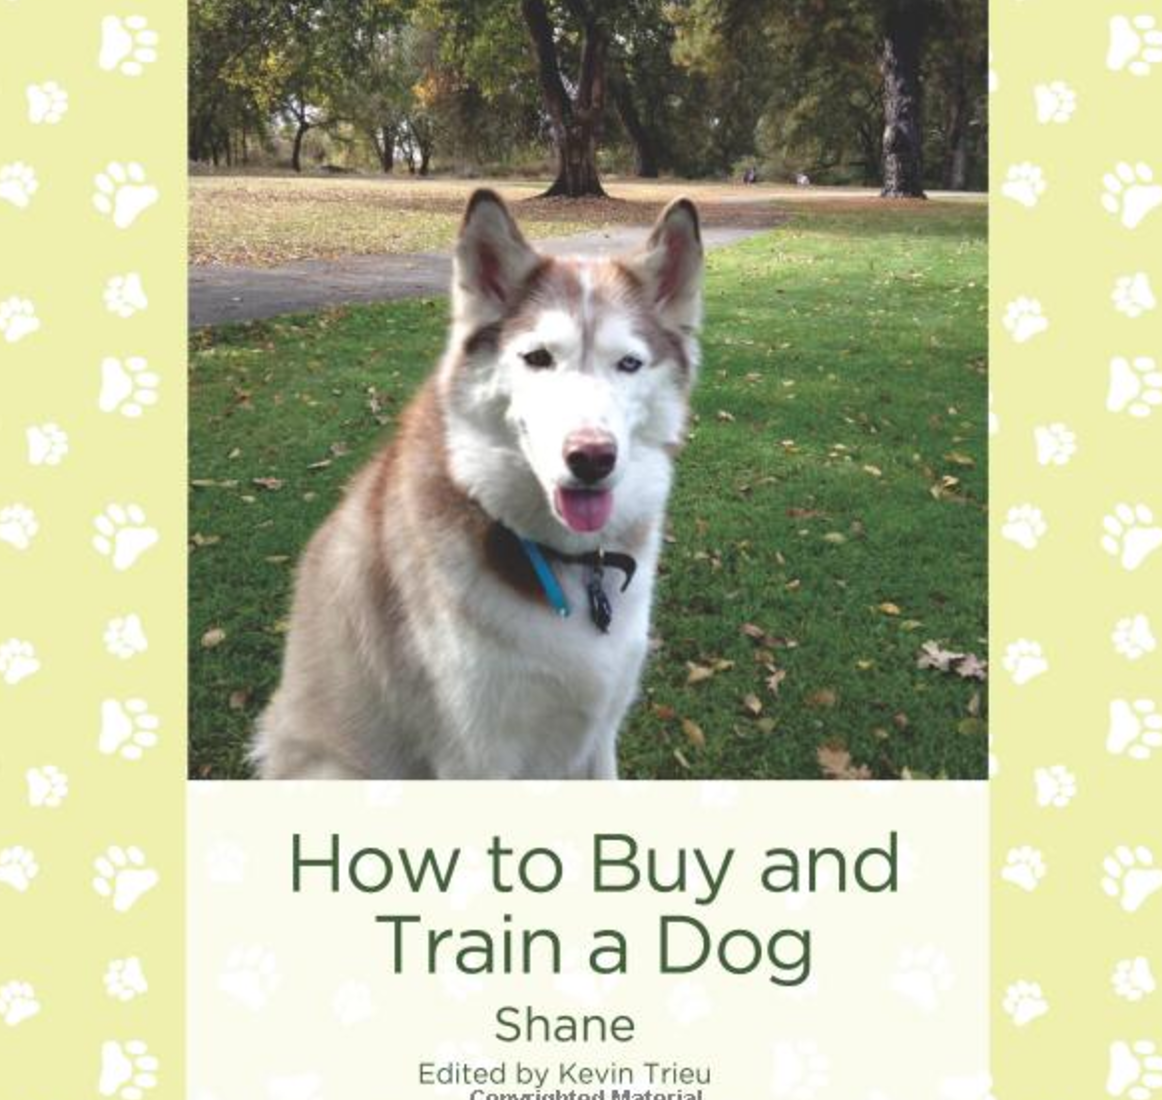 How to Buy and Train a Dog   How to Buy and Train a Dog provides the beginning reader with everything he or she needs to know about getting a new dog. Spanish/English cognates guide the dual language learner to look for similarities across the two languages.   Buy this book.